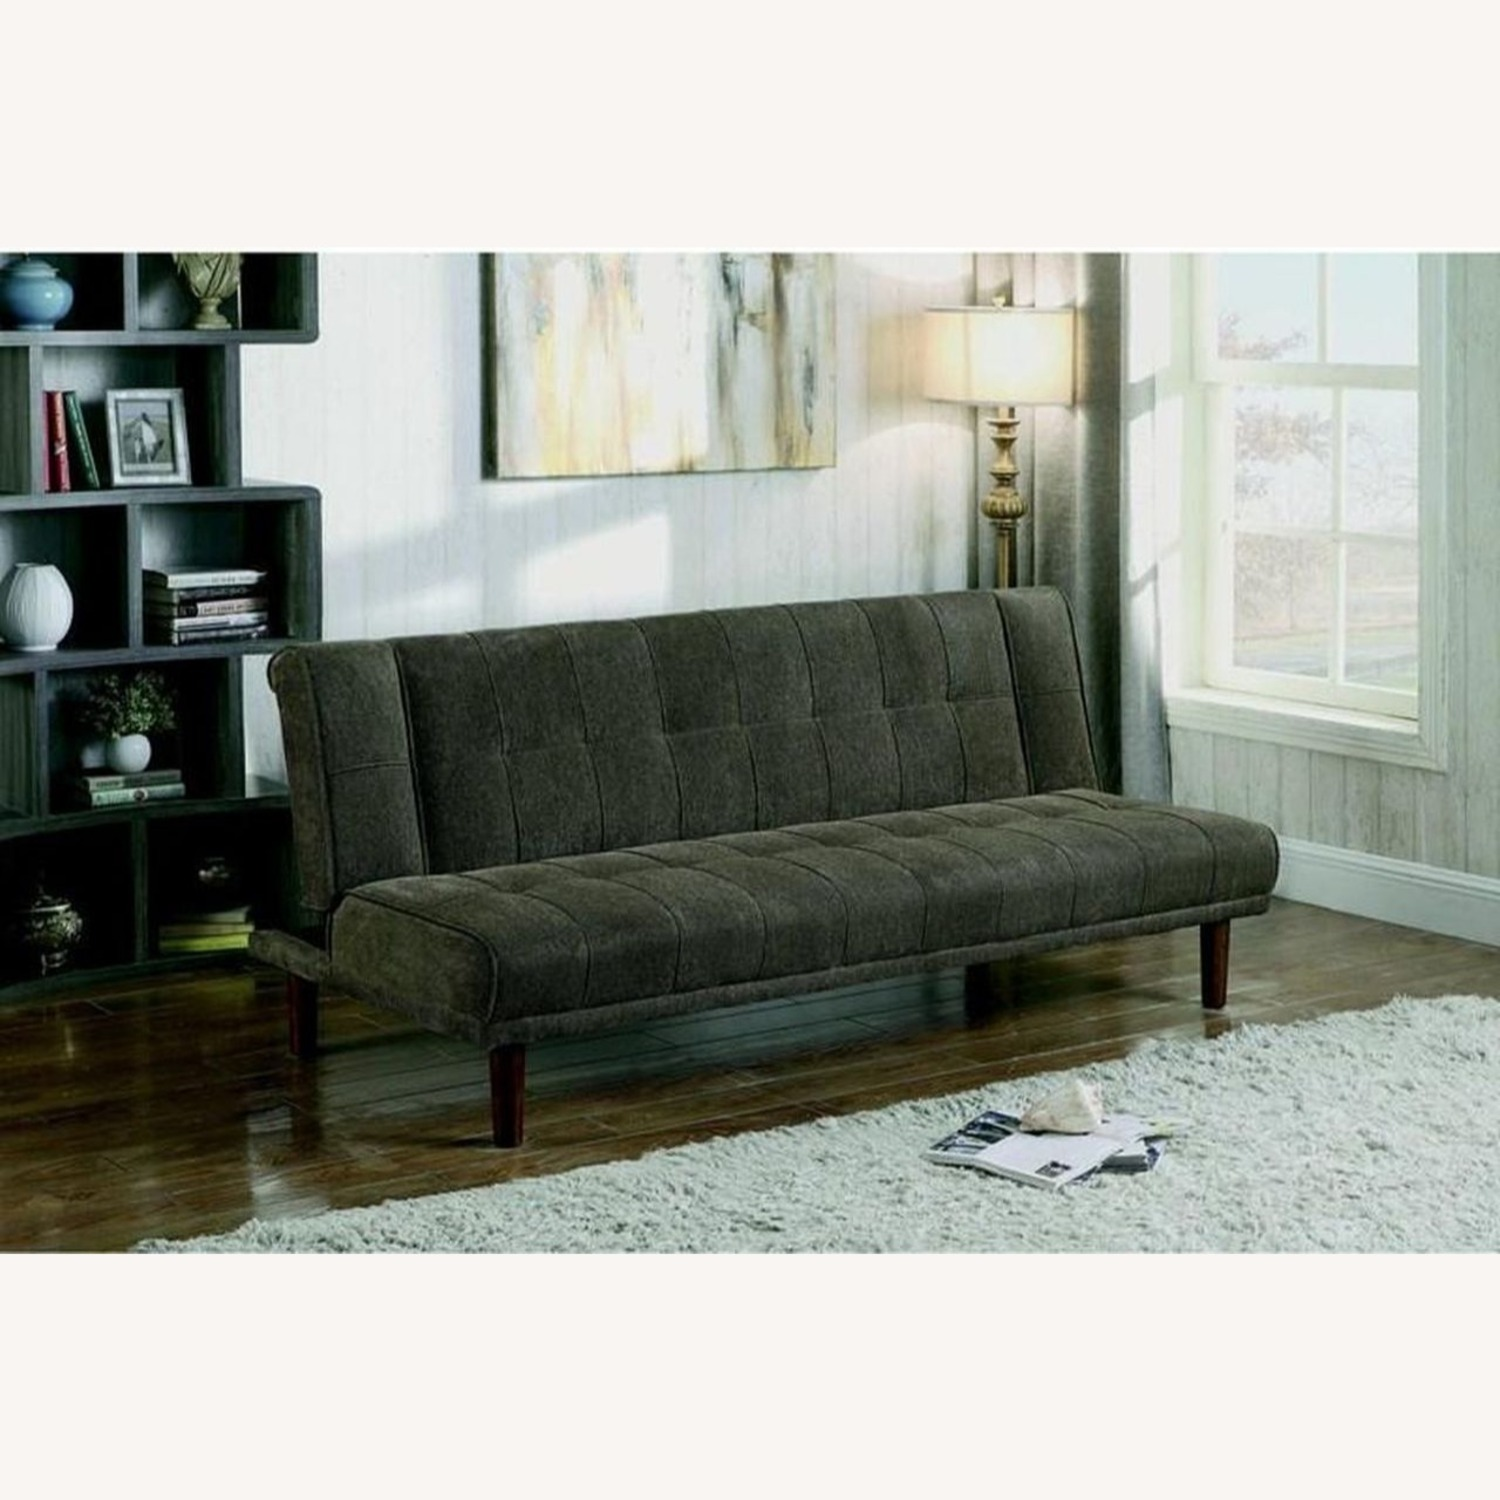 Transitional Sofa Bed In Moss Chenille Fabric - image-3